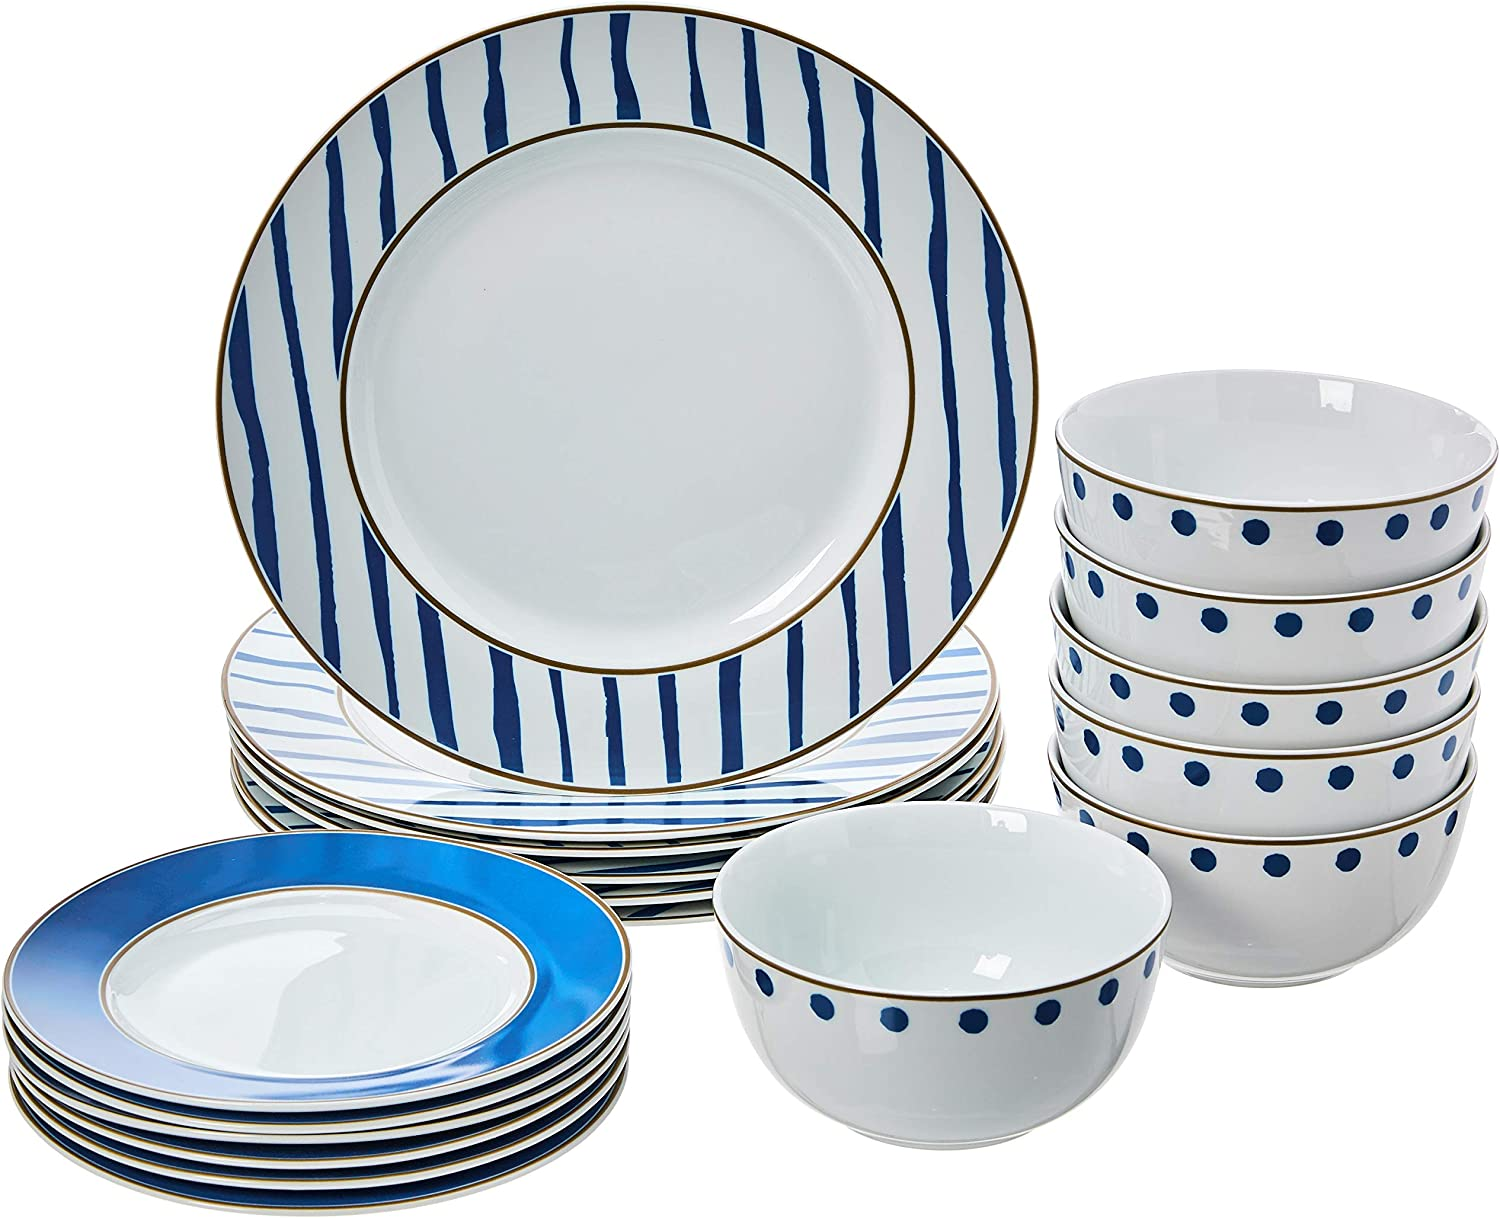 AmazonBasics 18-Piece Kitchen Dinnerware Set